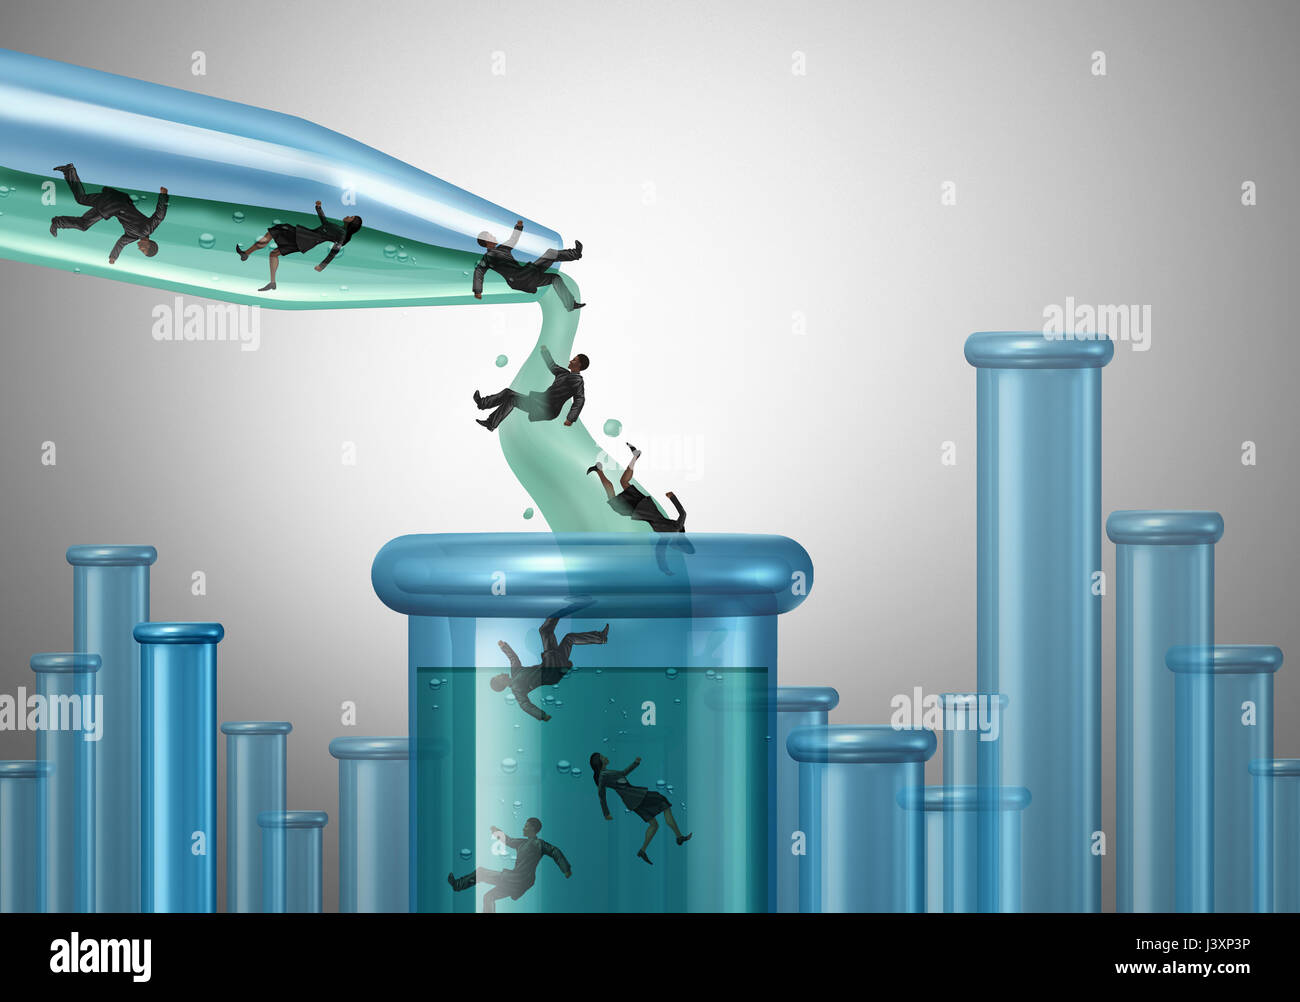 Drug Testing Human Stock Photos & Drug Testing Human Stock